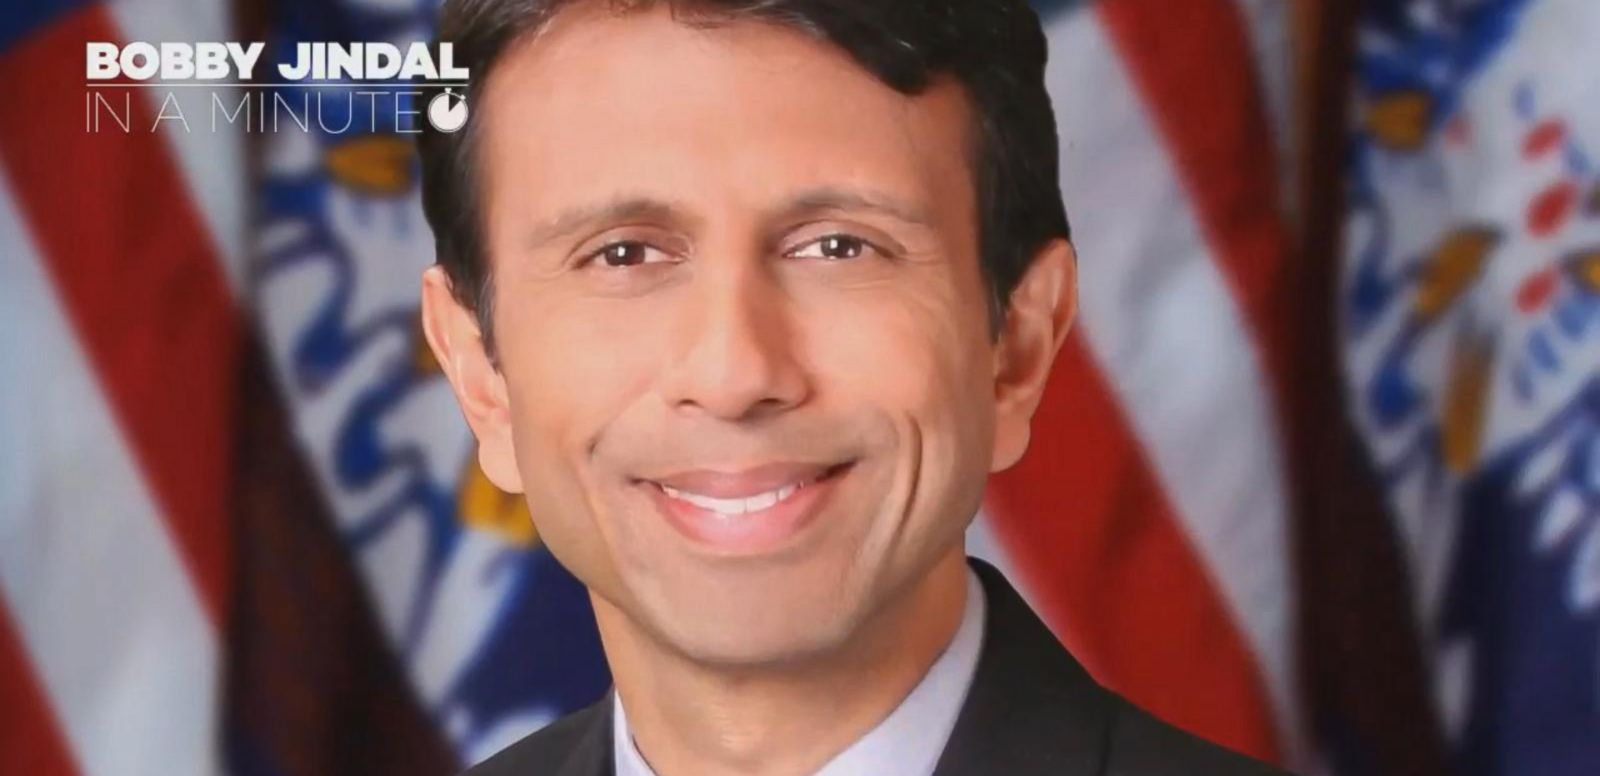 VIDEO: Bobby Jindal In A Minute